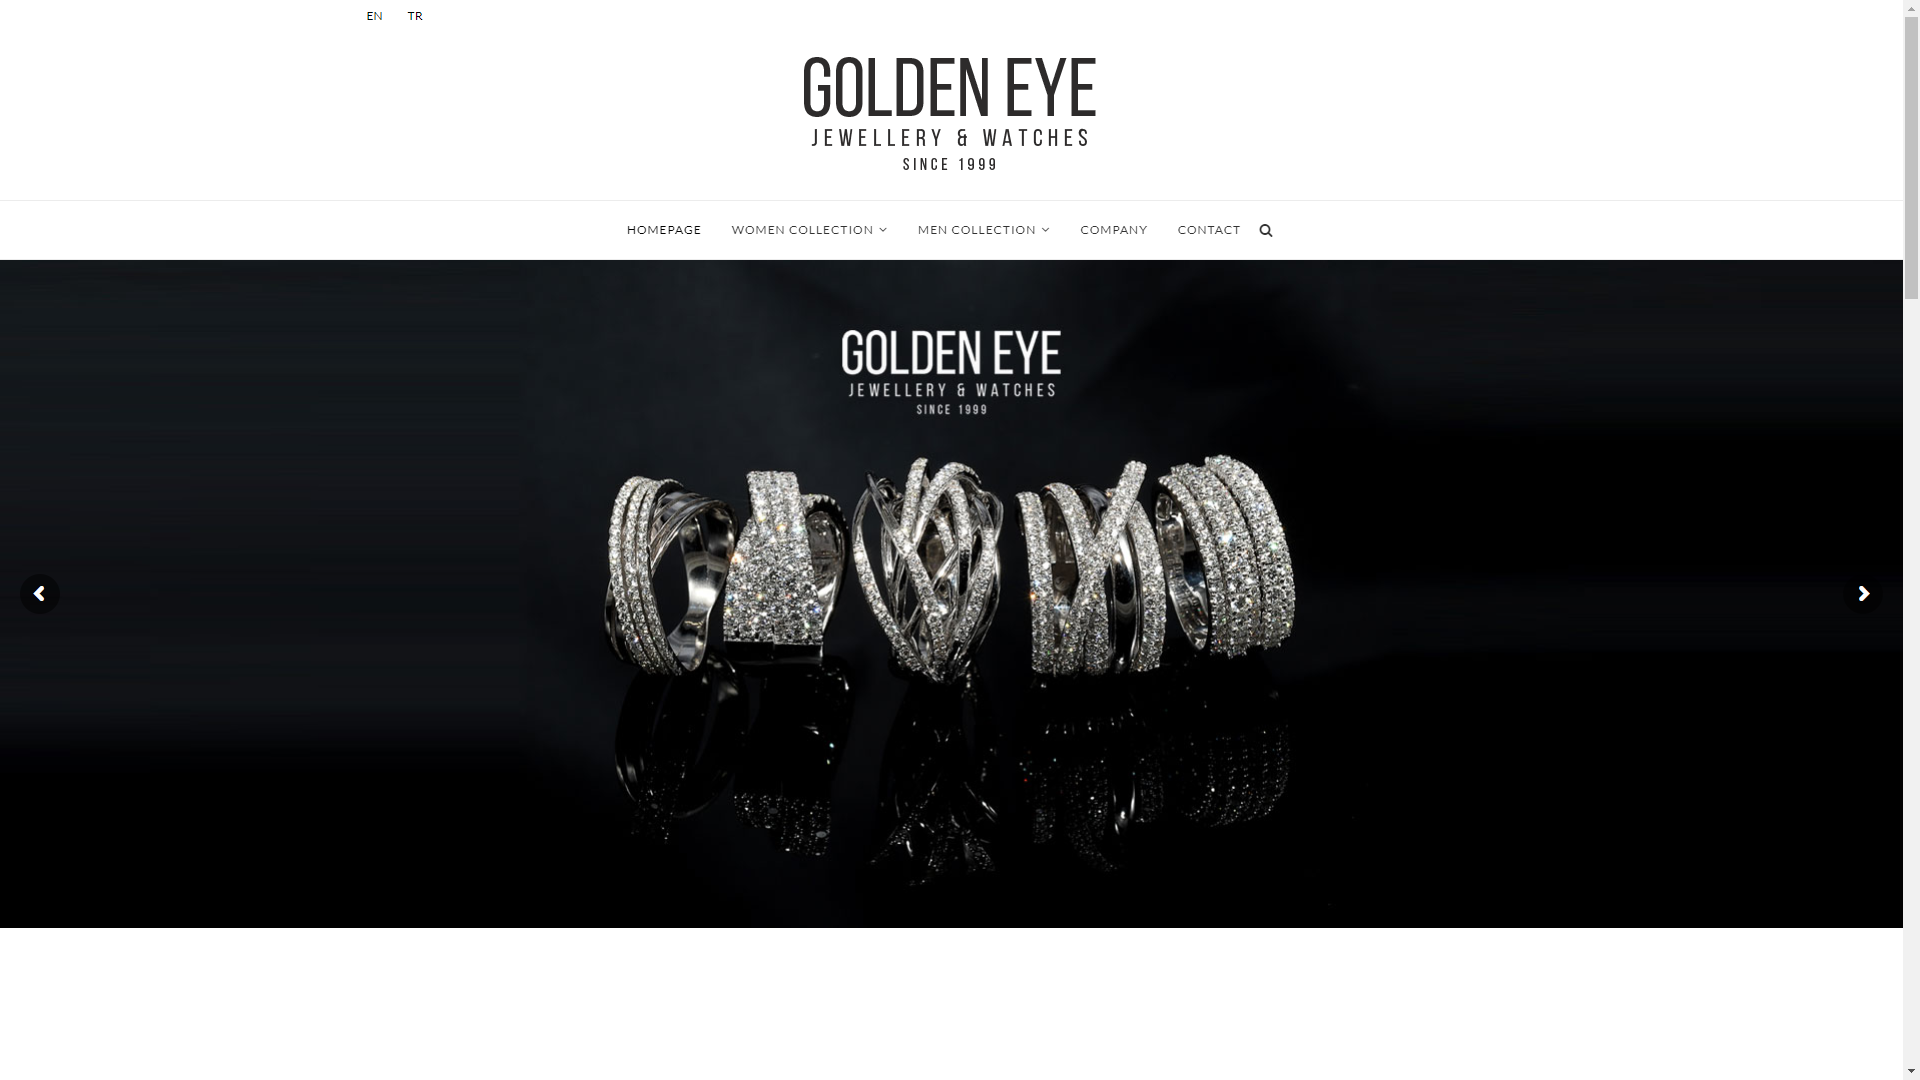 webfili-alanya-jewelry-shop-golden-eye-renewed-01